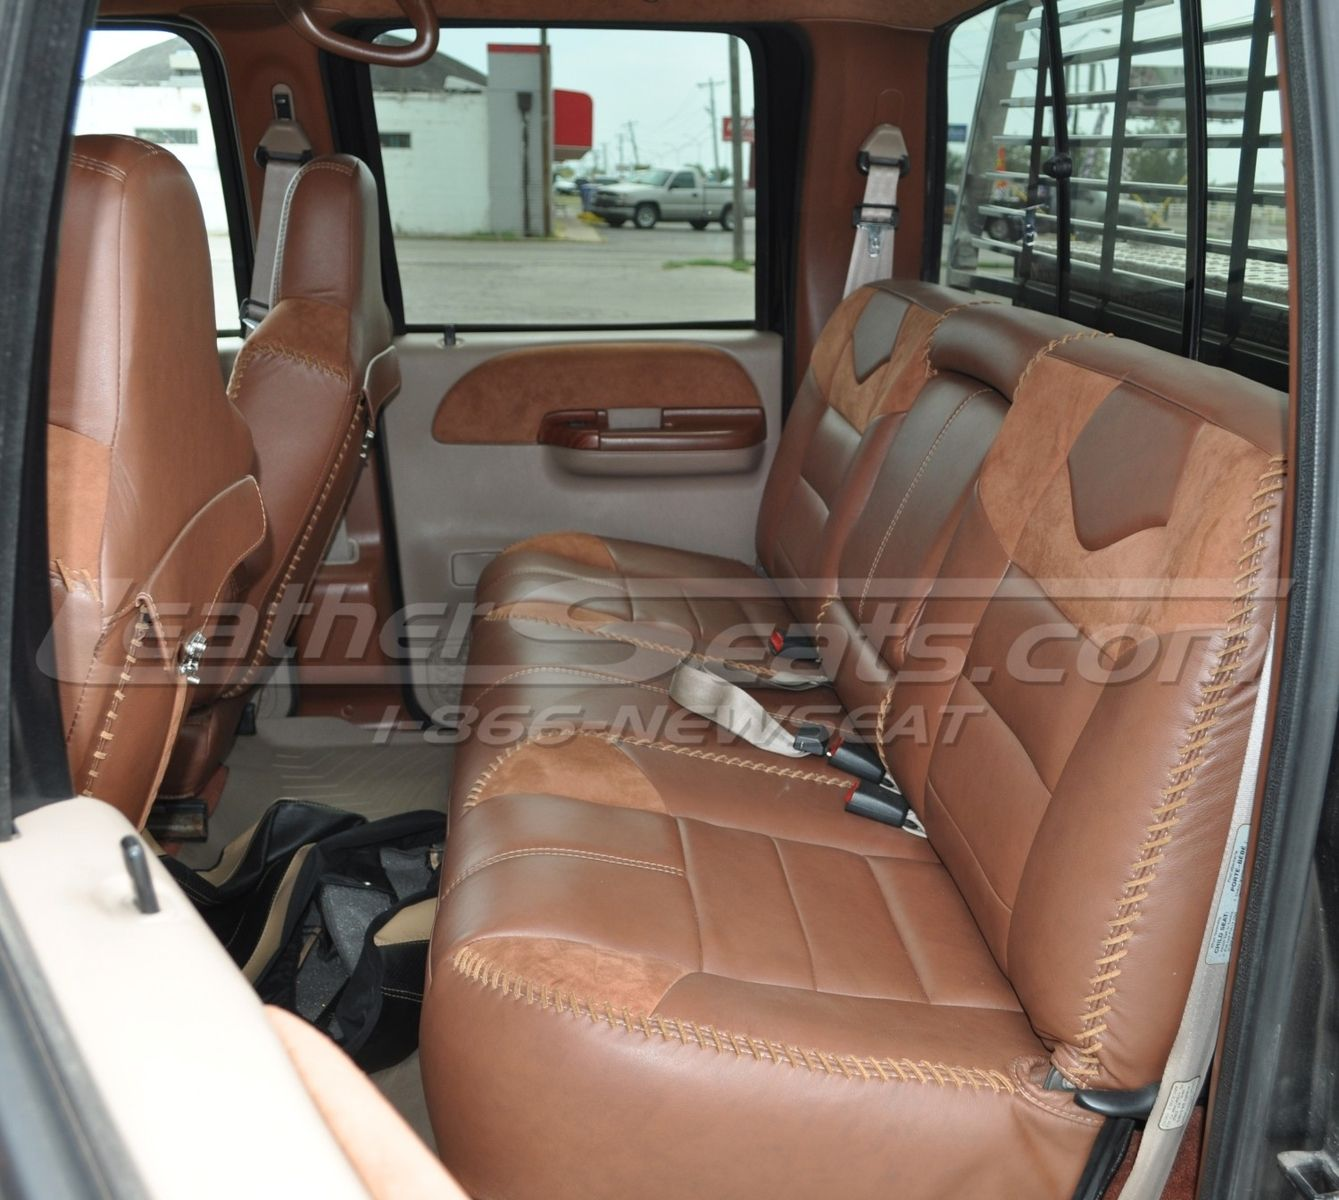 Ford King Ranch Interior: King Ranch Style Truck Interior Conversion